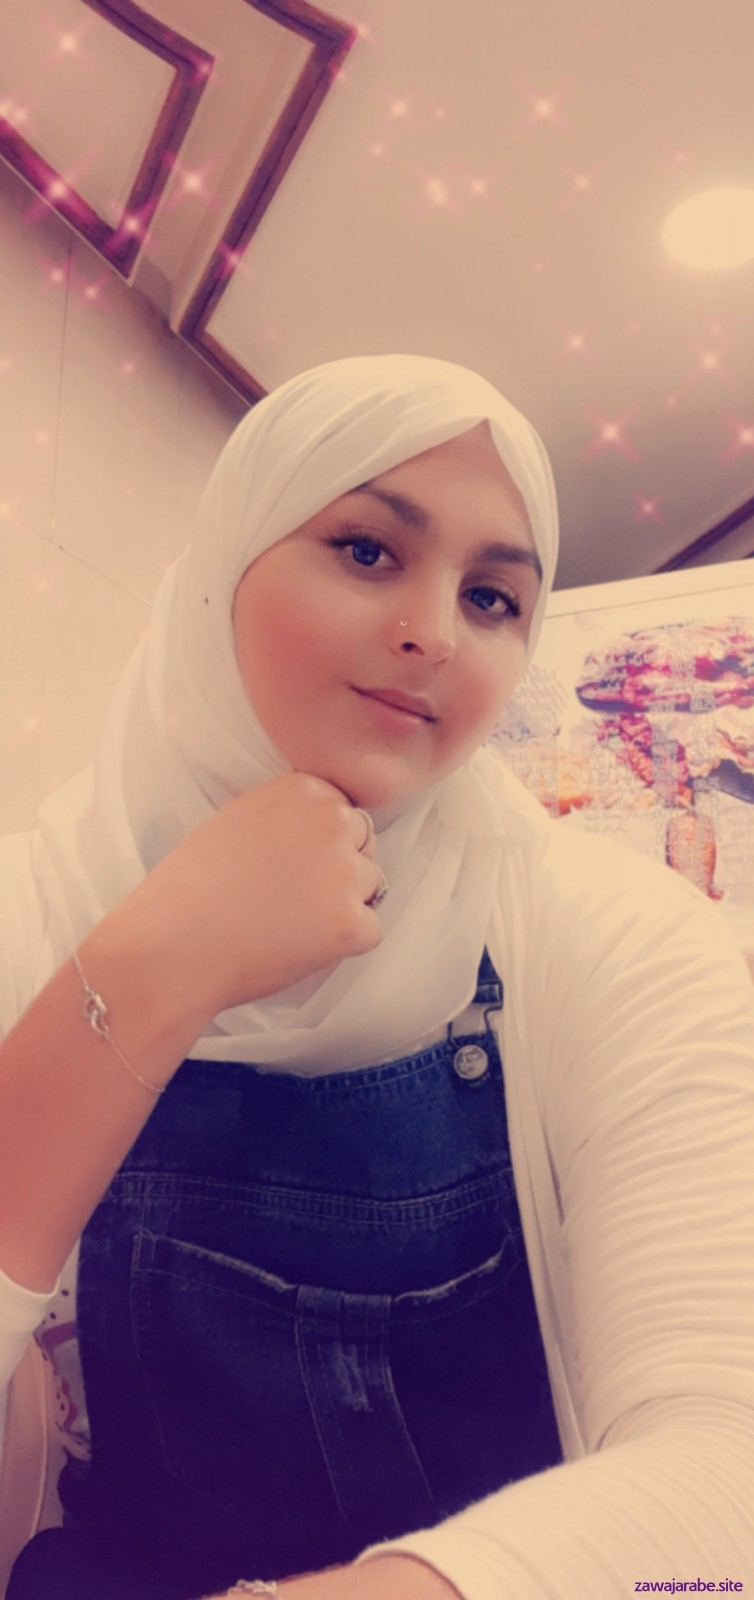 Kenitra Gharb Chrarda Beni Hssen Morocco fofi2019, woman ,from morocco he is looking for a marriage